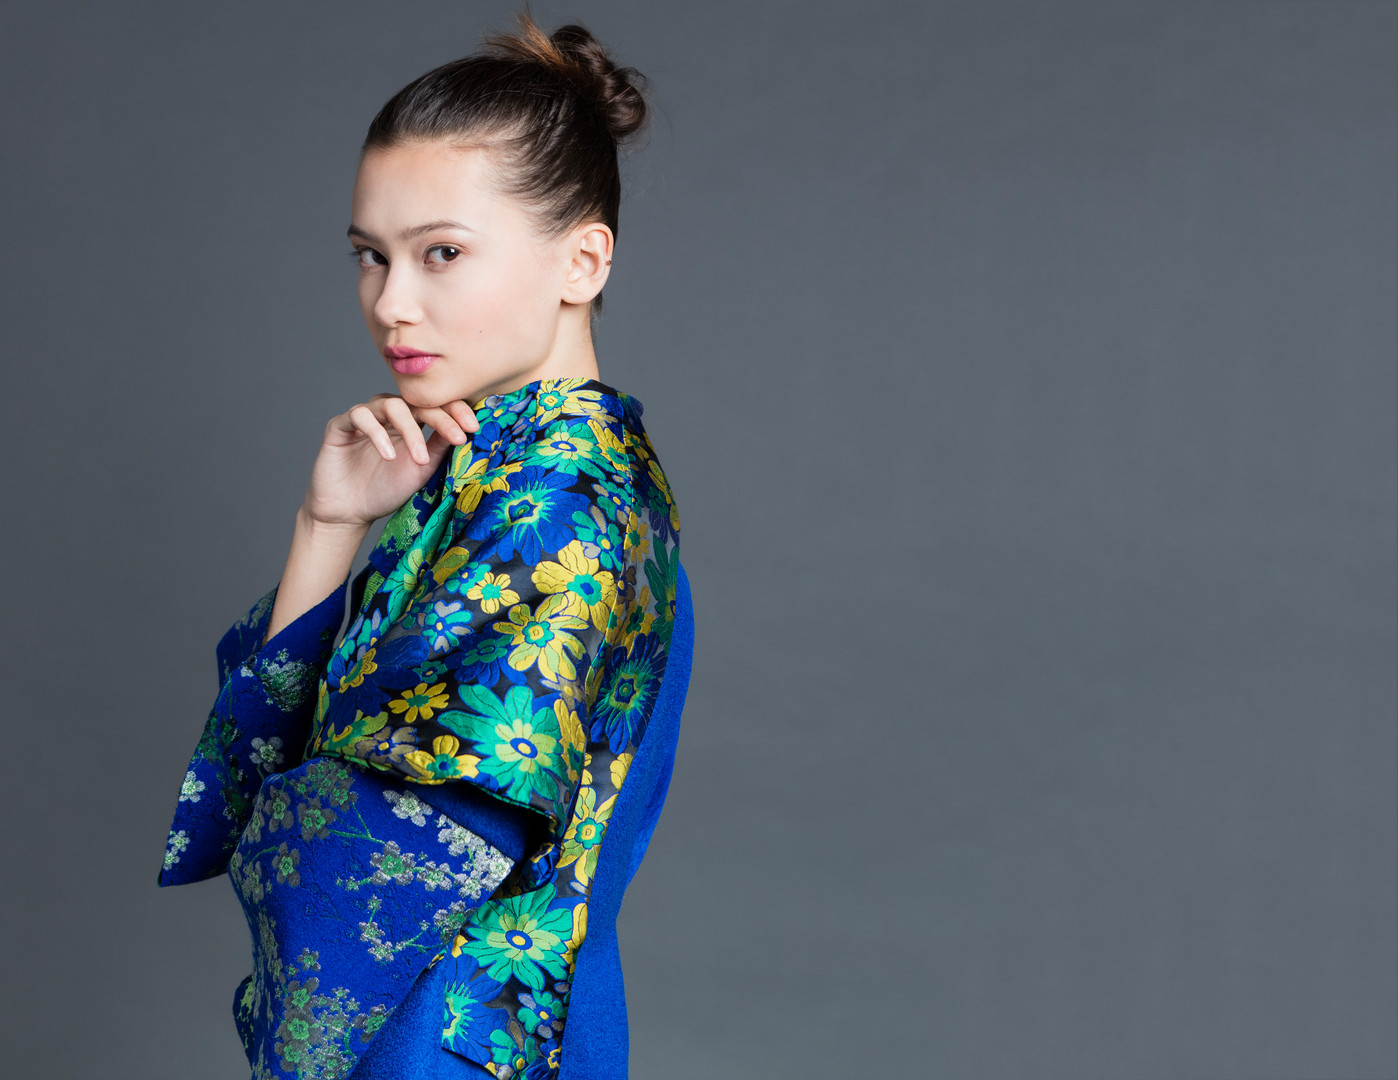 Styling: Lilly Vu Photographer: Mael G.Lagadec MUA: Melissa Szewc  Model: Layla @ The Agent  Collection: The Nguyen Dynasty by Lilly Vu at Atelier Lannaux